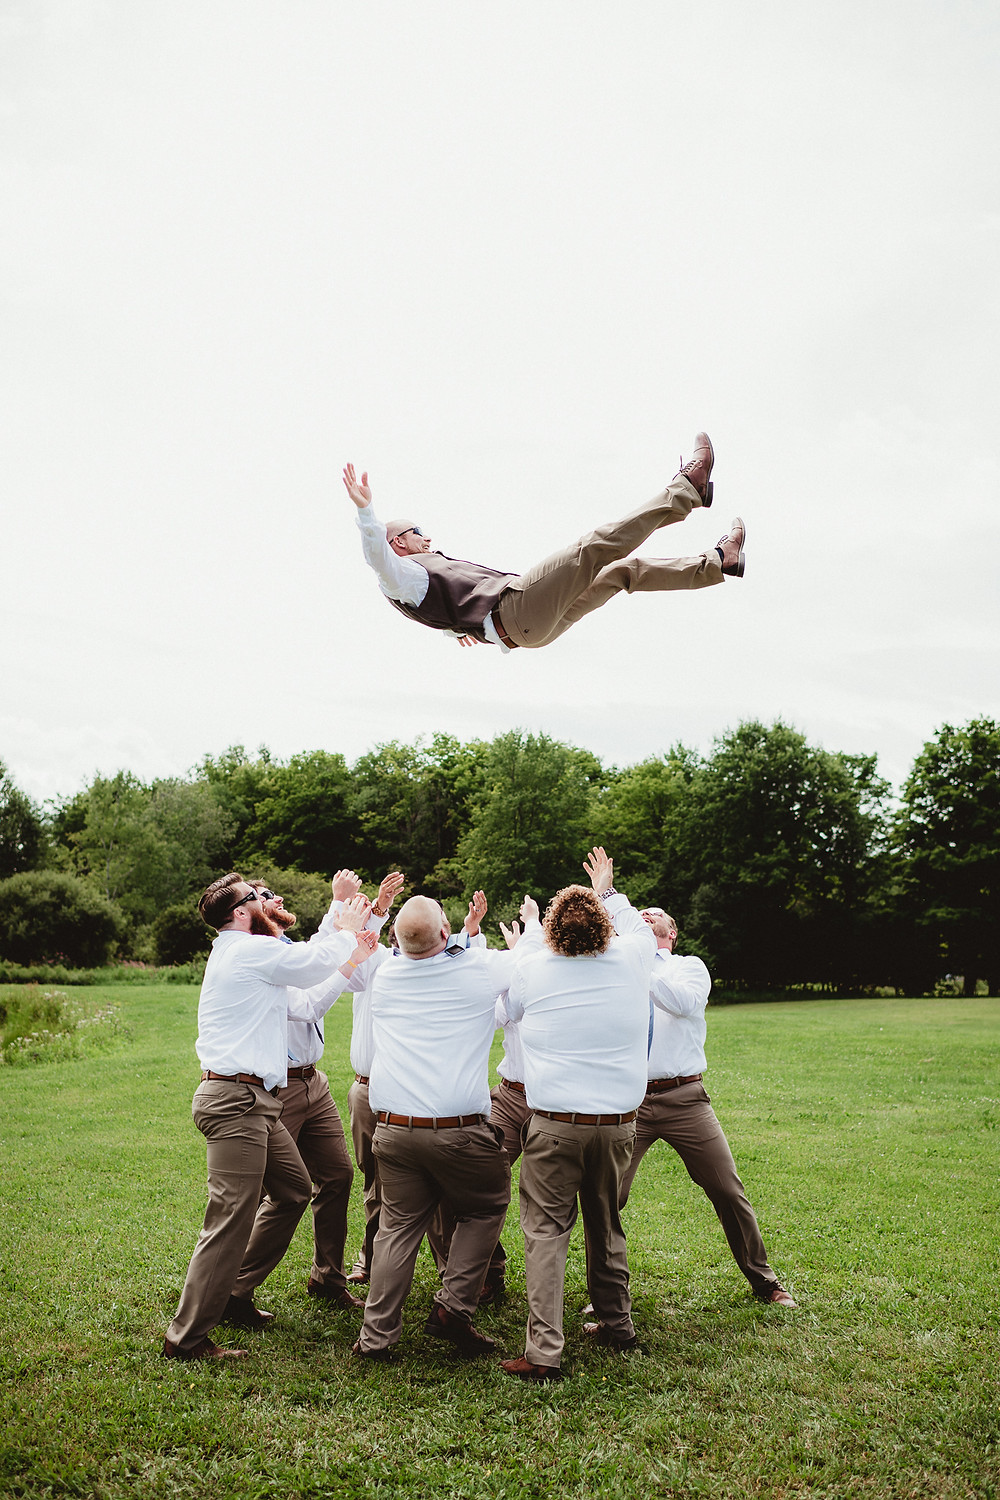 Groom being tossed in the air by groomsmen before his wedding. Rochester, NY photography.